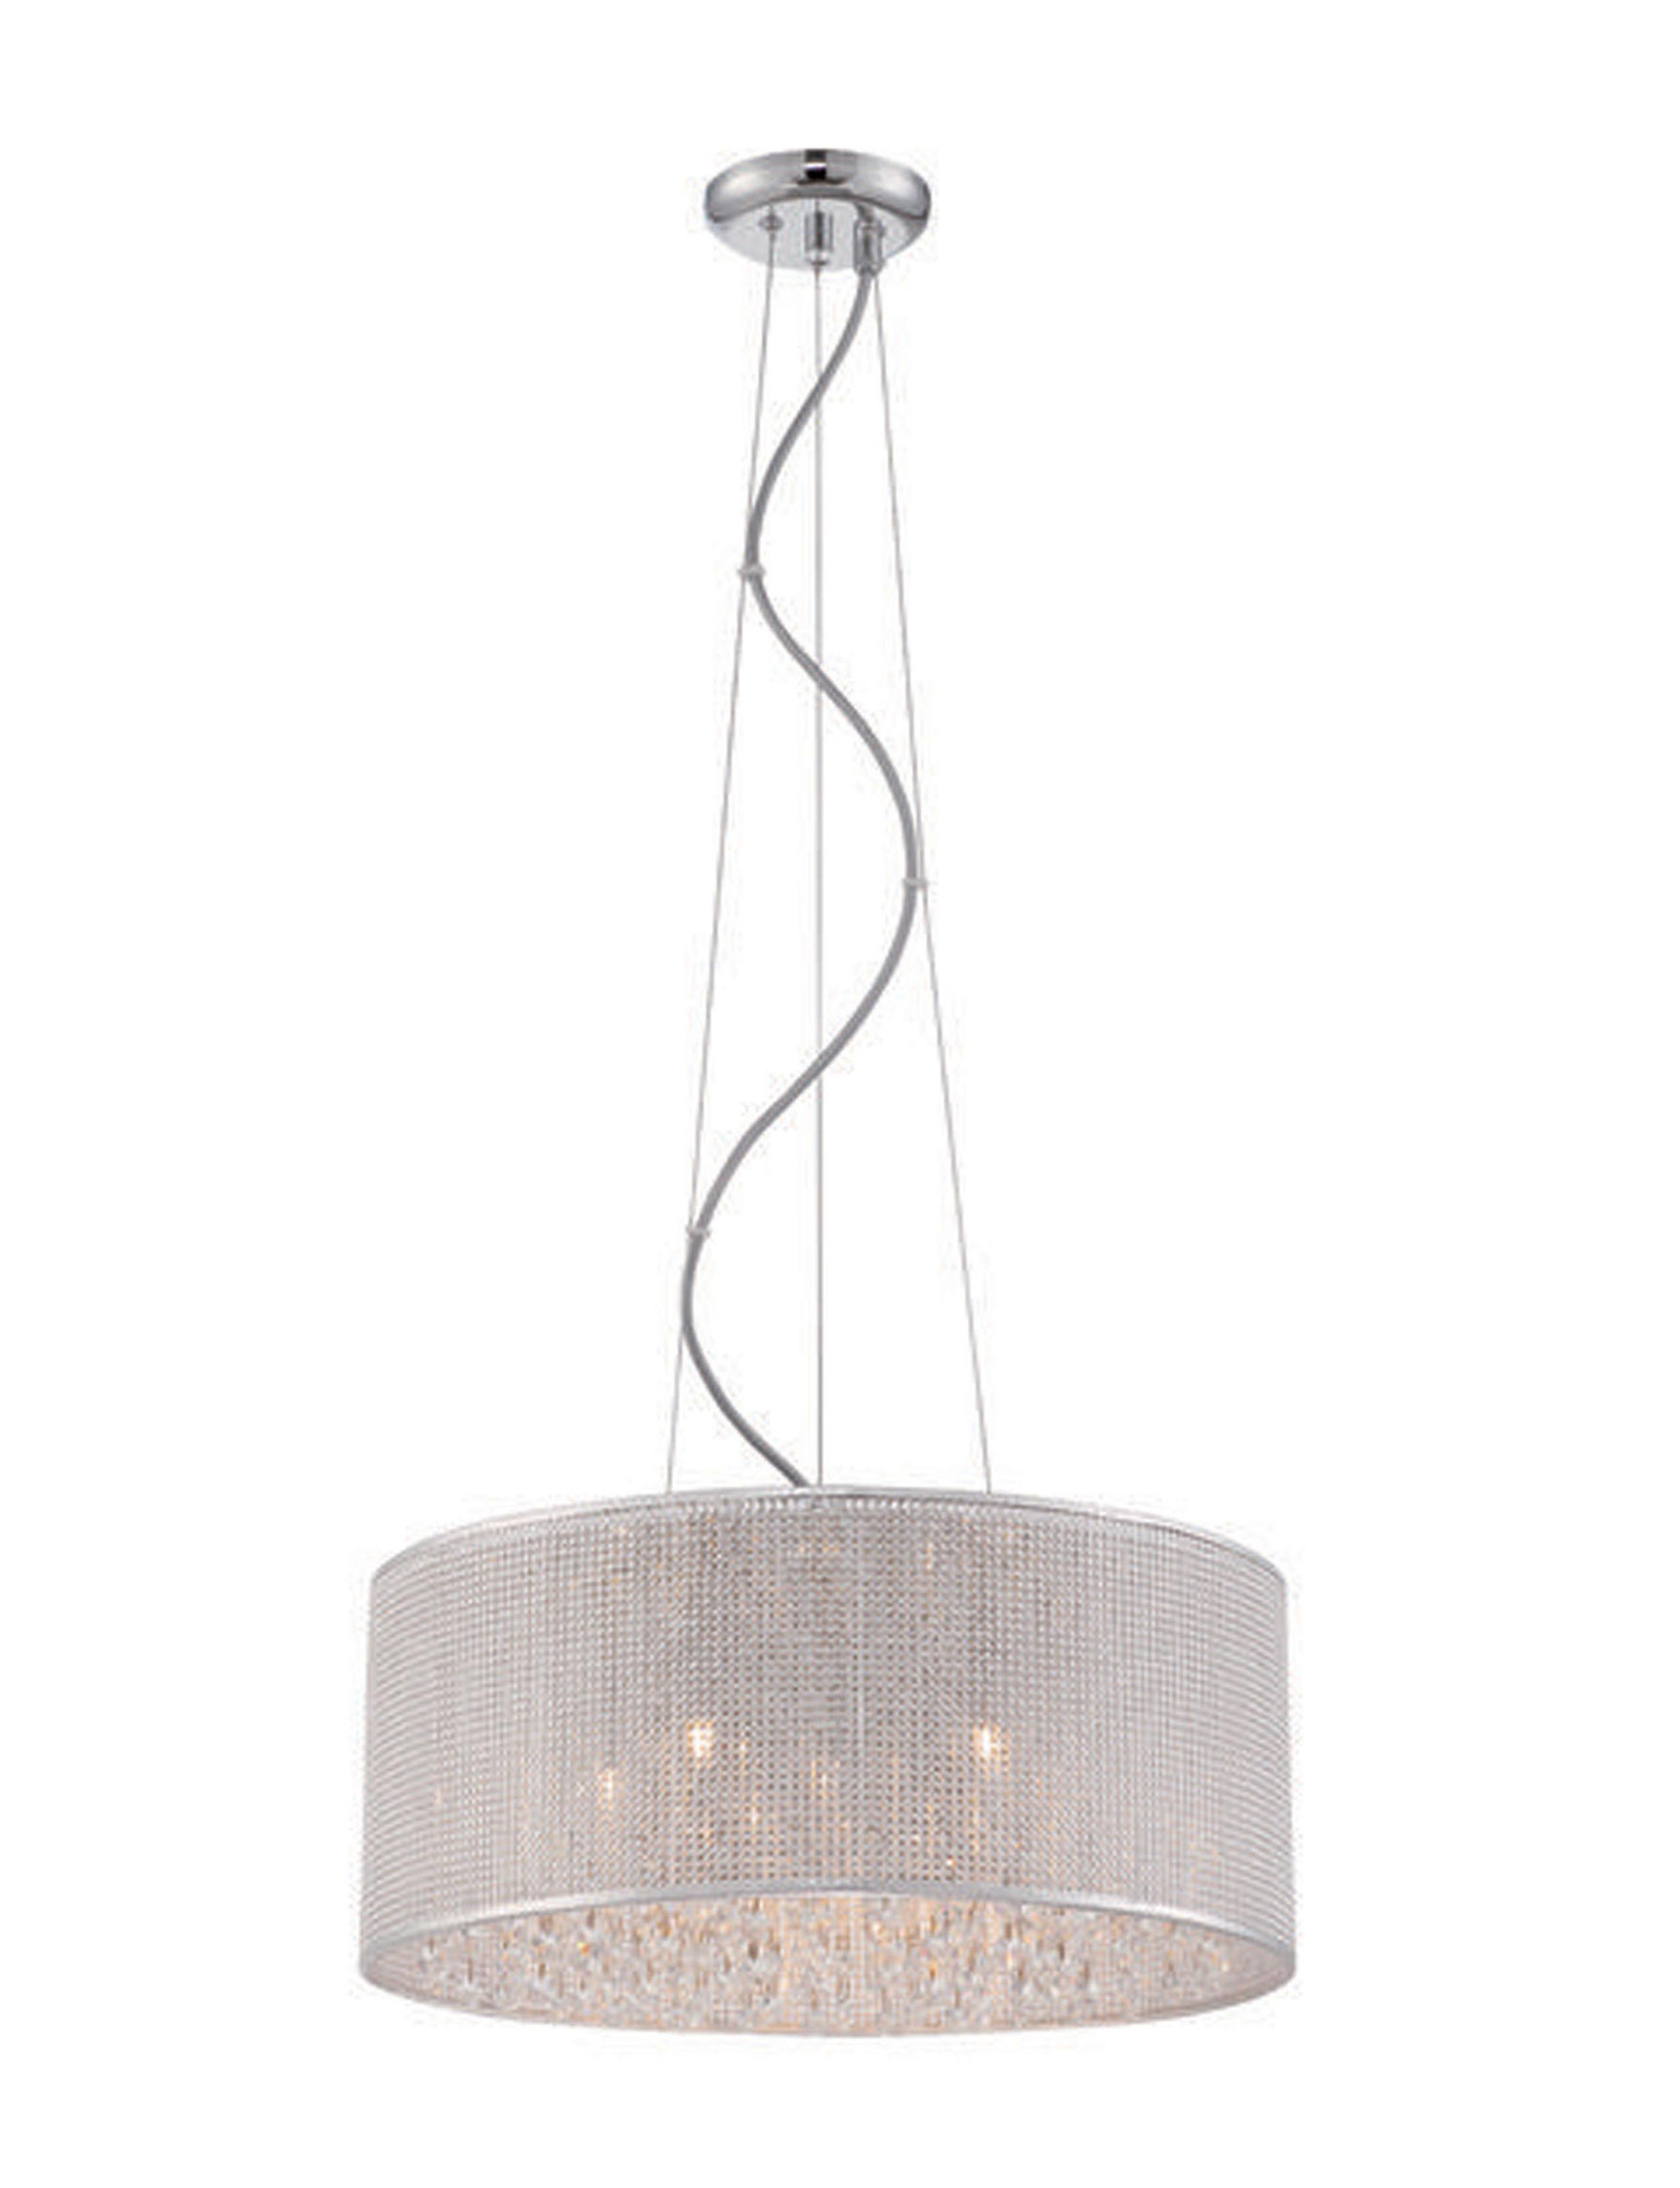 Decor Therapy Chrome Chandeliers Lights & Lanterns Lighting & Lamps